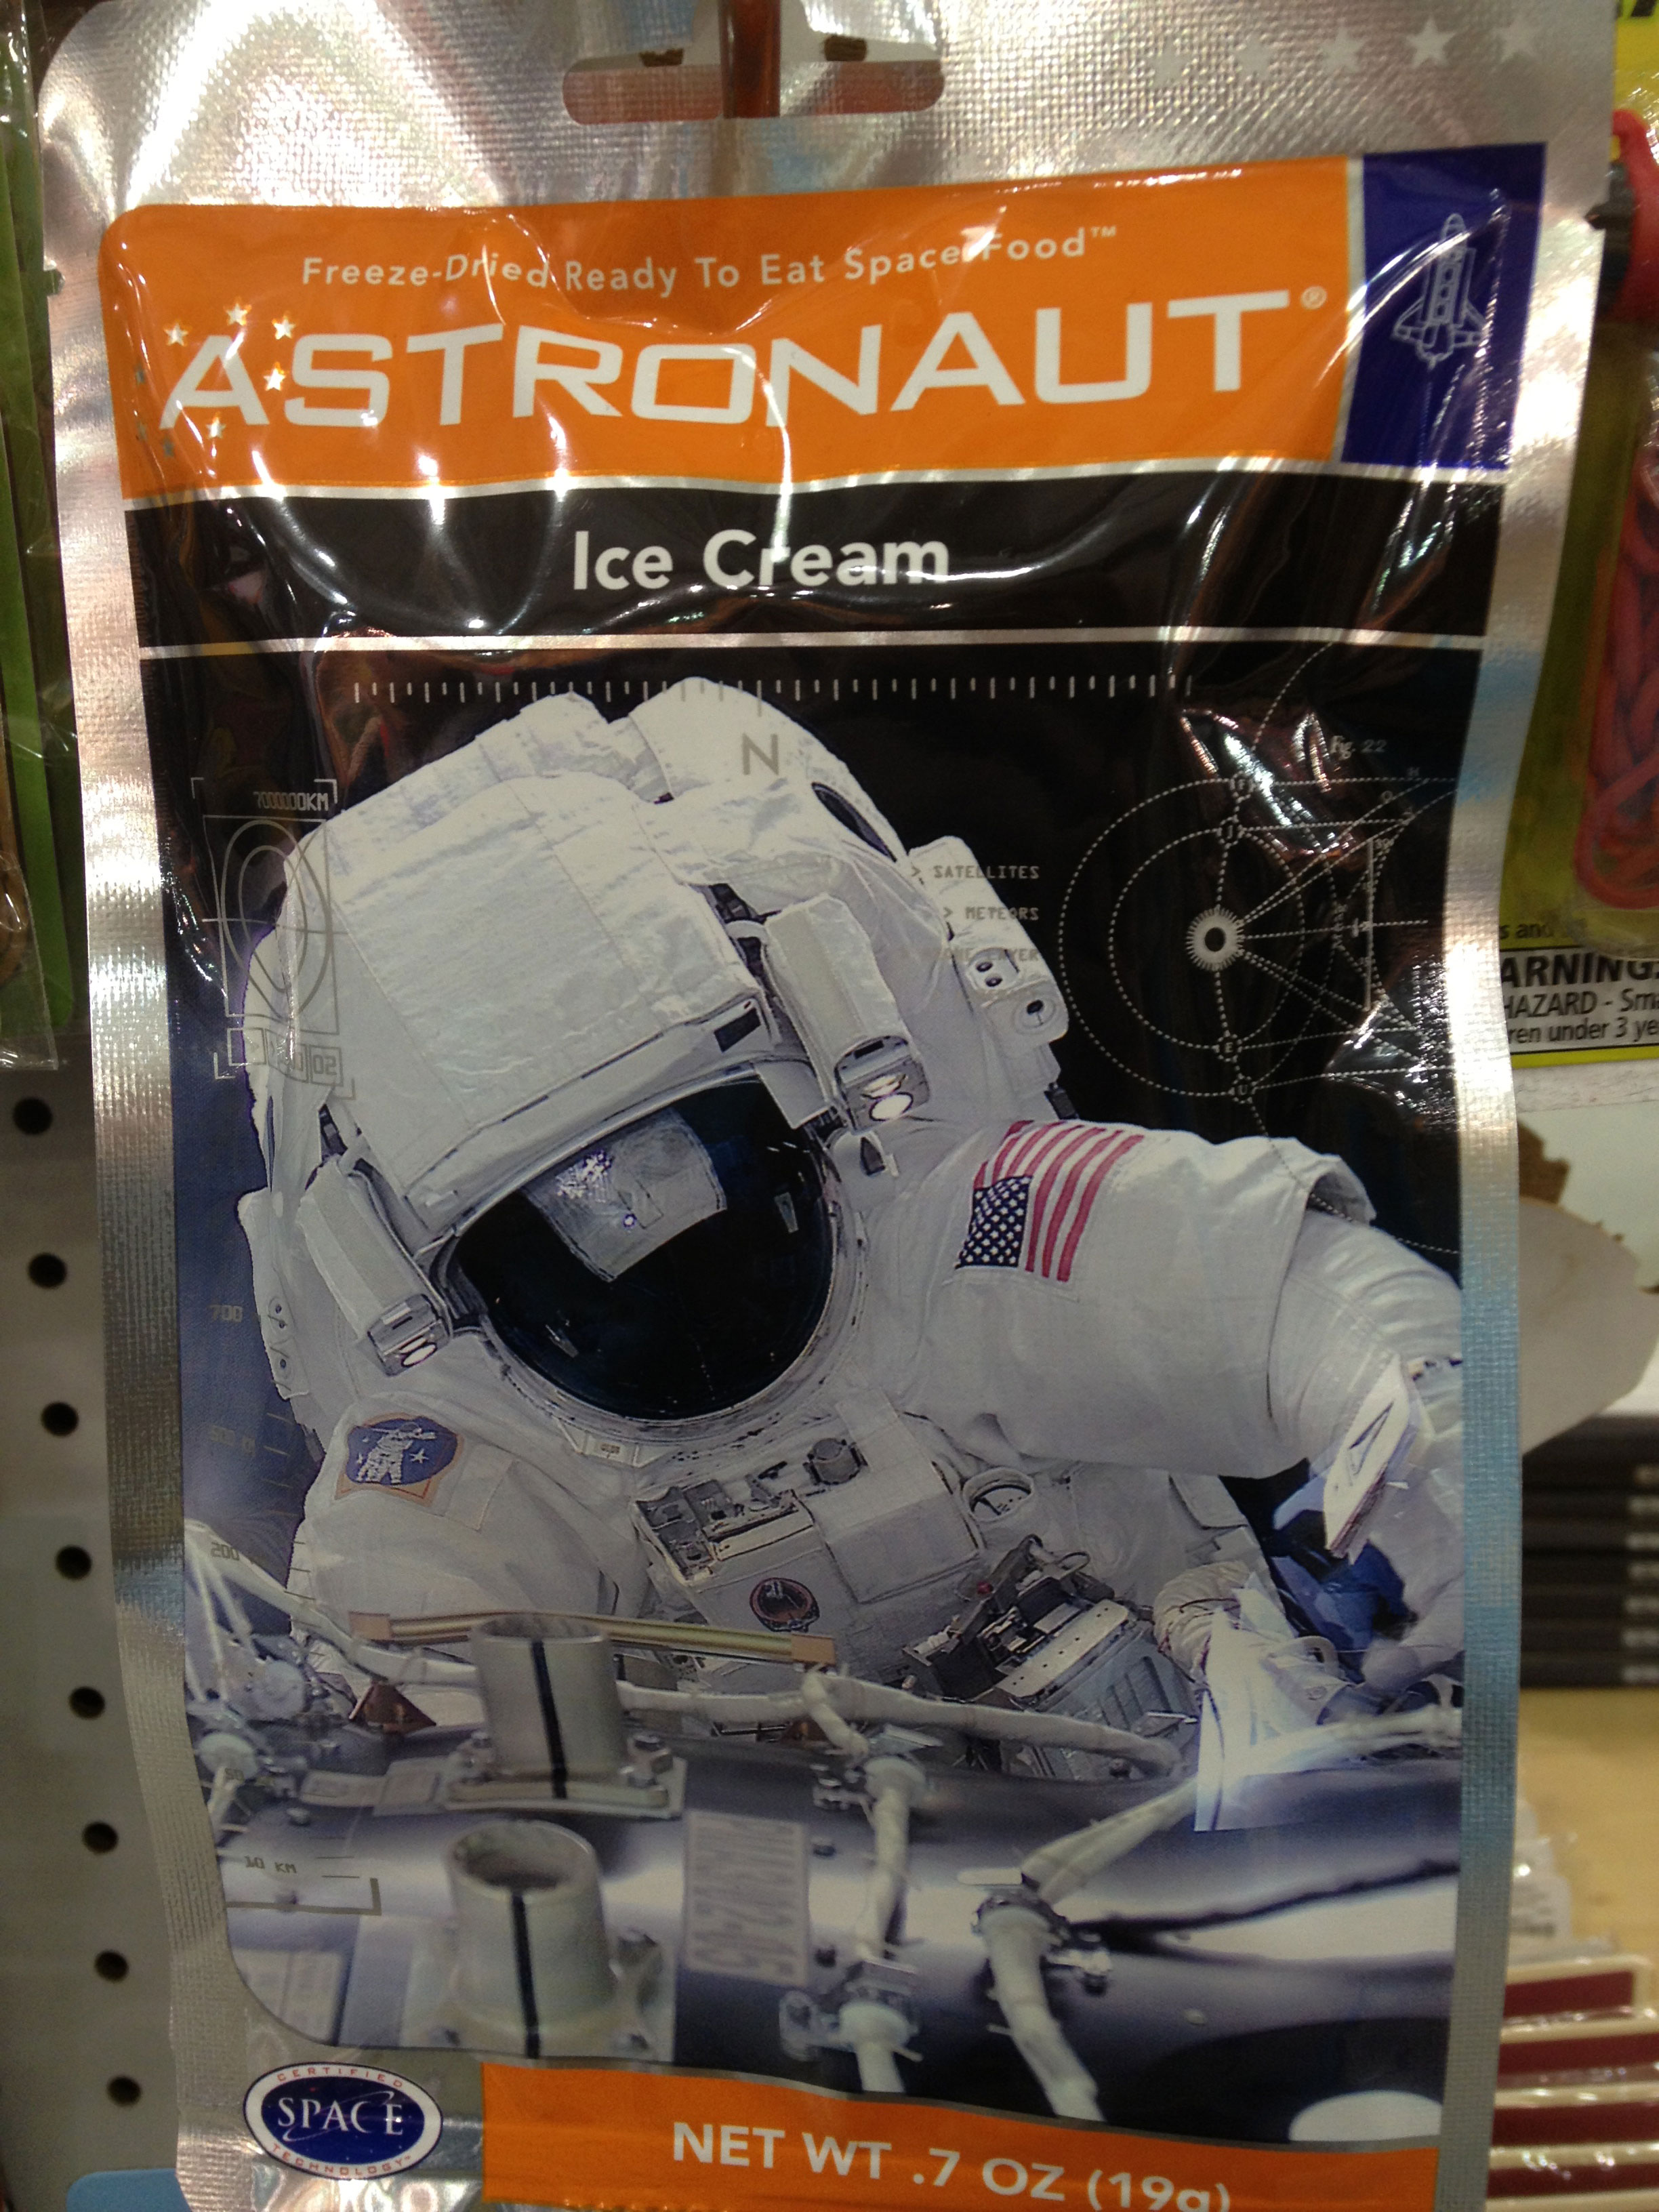 You know you're close to the  U.S. Space and Rocket Center  when you see Astronaut Ice Cream for sale. (I think I prefer Eskimo Ice Cream now.)